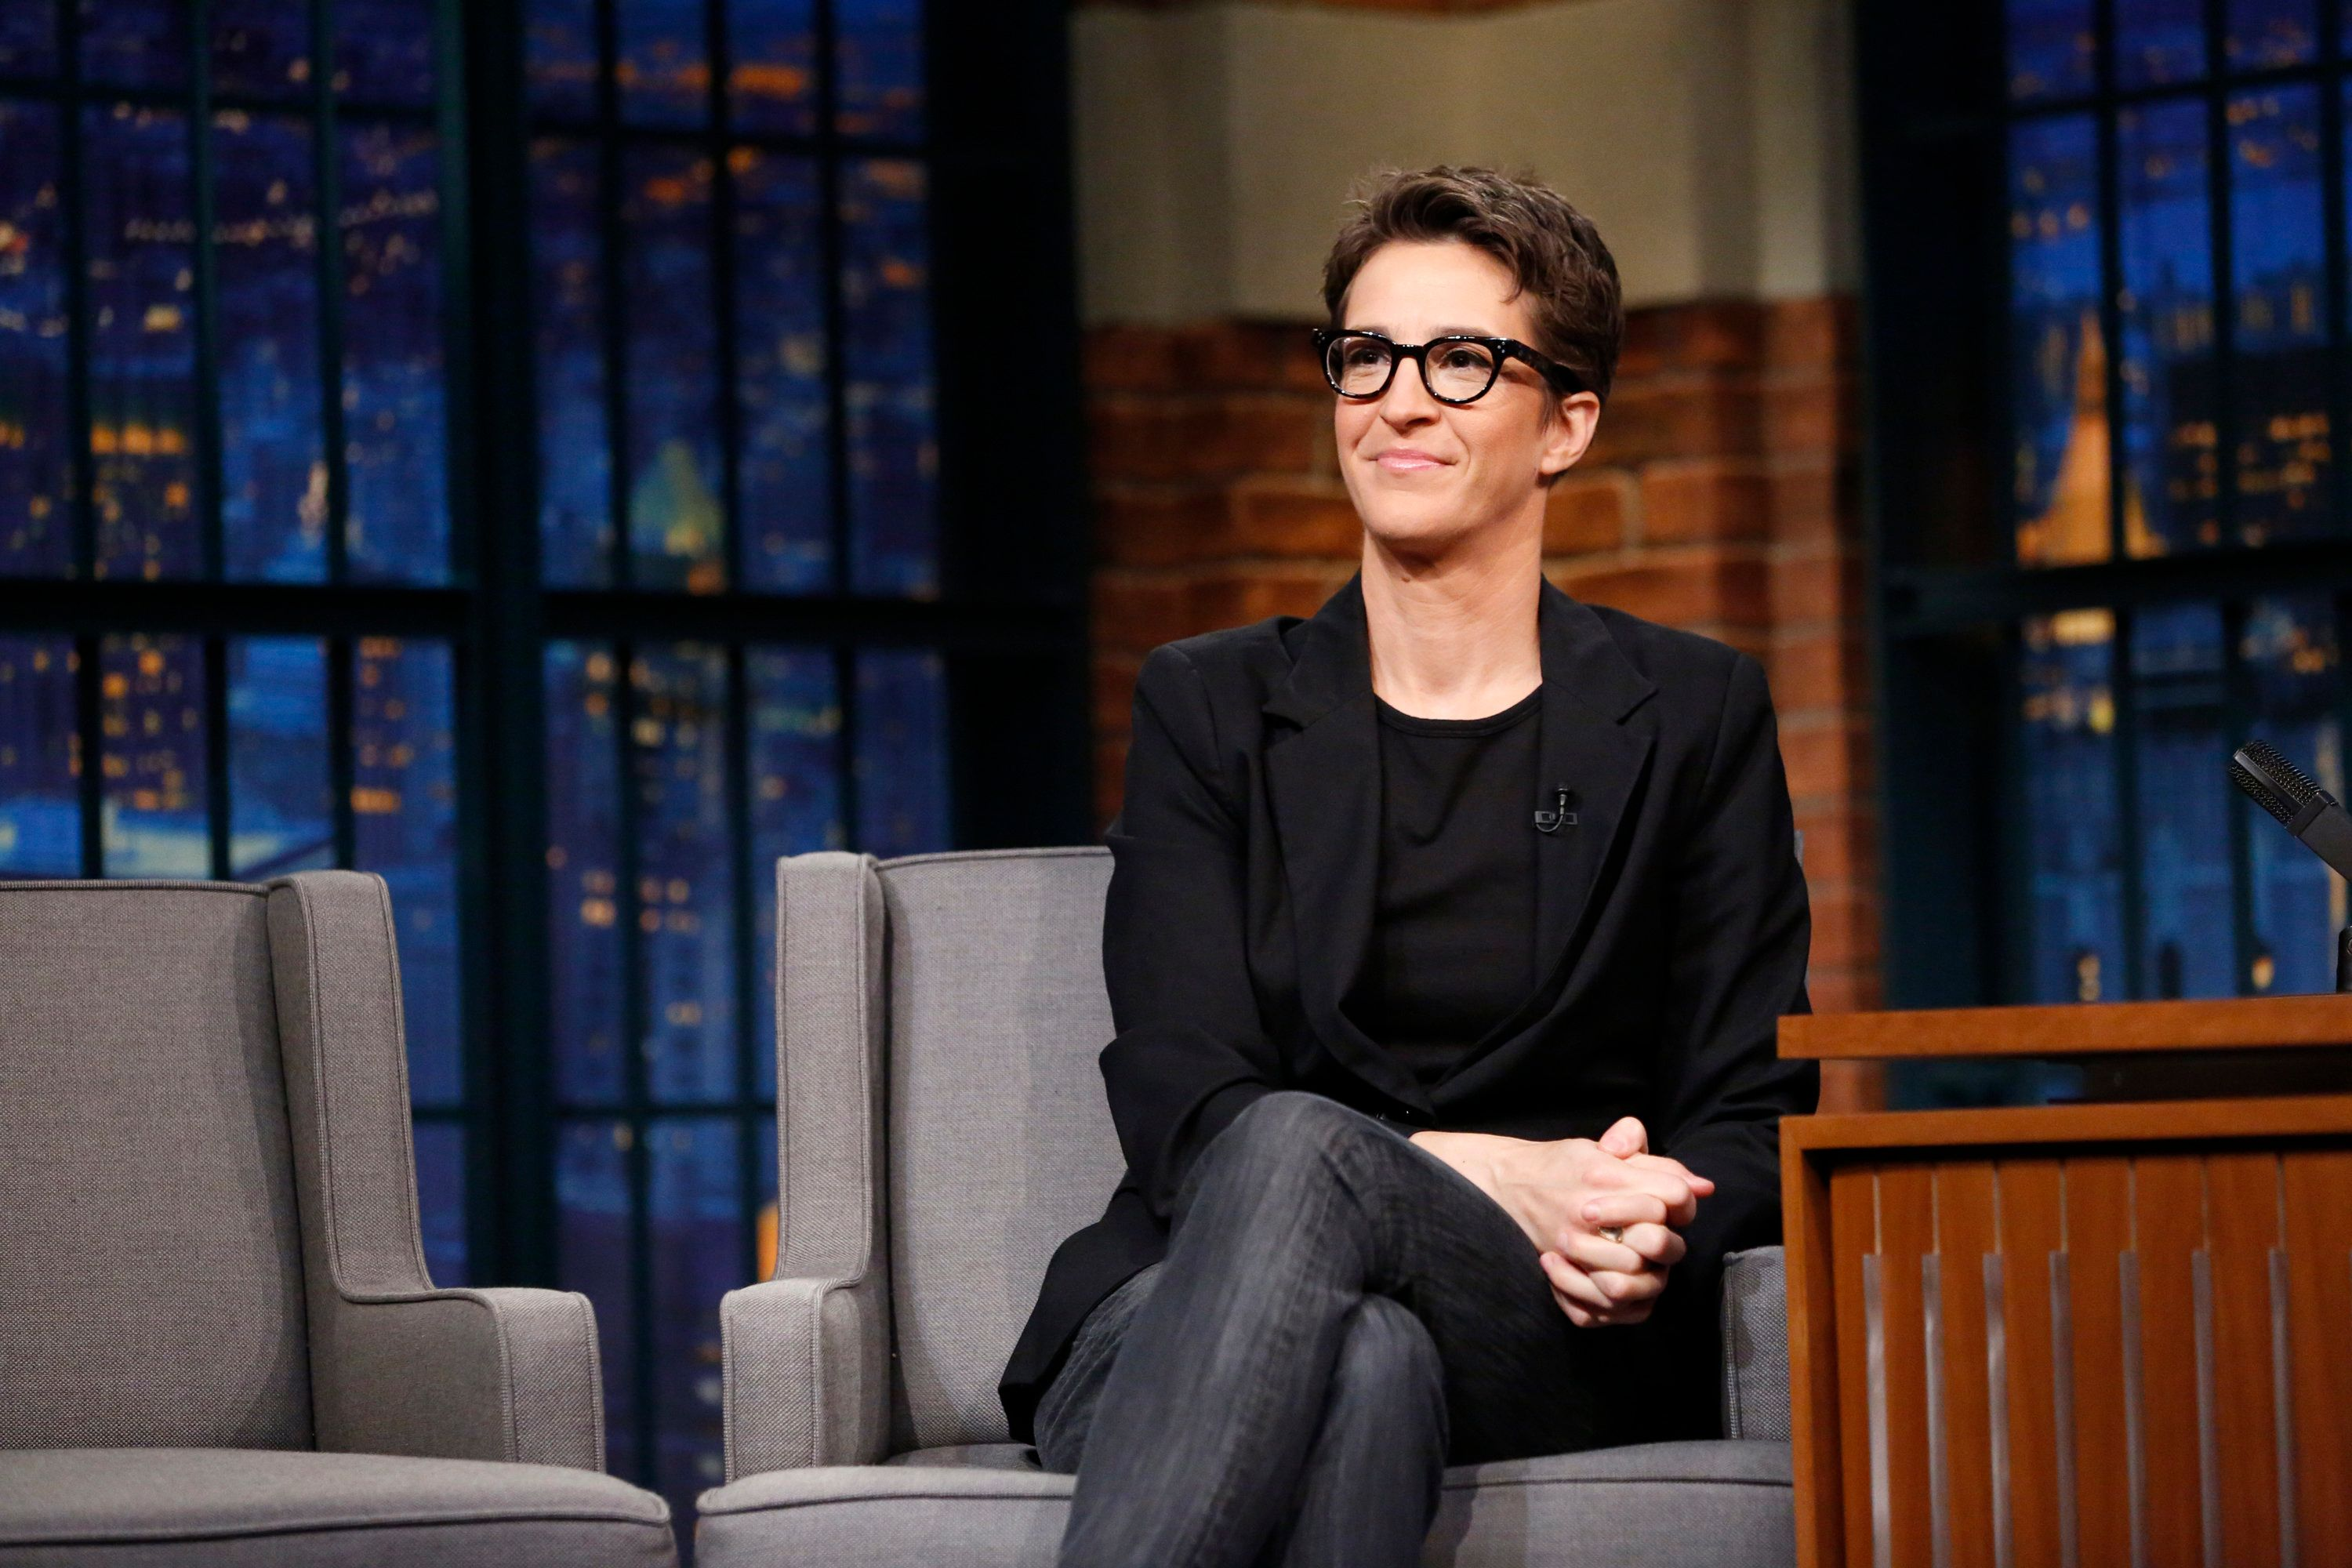 LATE NIGHT WITH SETH MEYERS -- Episode 466 -- Pictured: Political commentator, Rachel Maddow during an interview on December 21, 2016 -- (Photo by: Lloyd Bishop/NBC/NBCU Photo Bank via Getty Images)